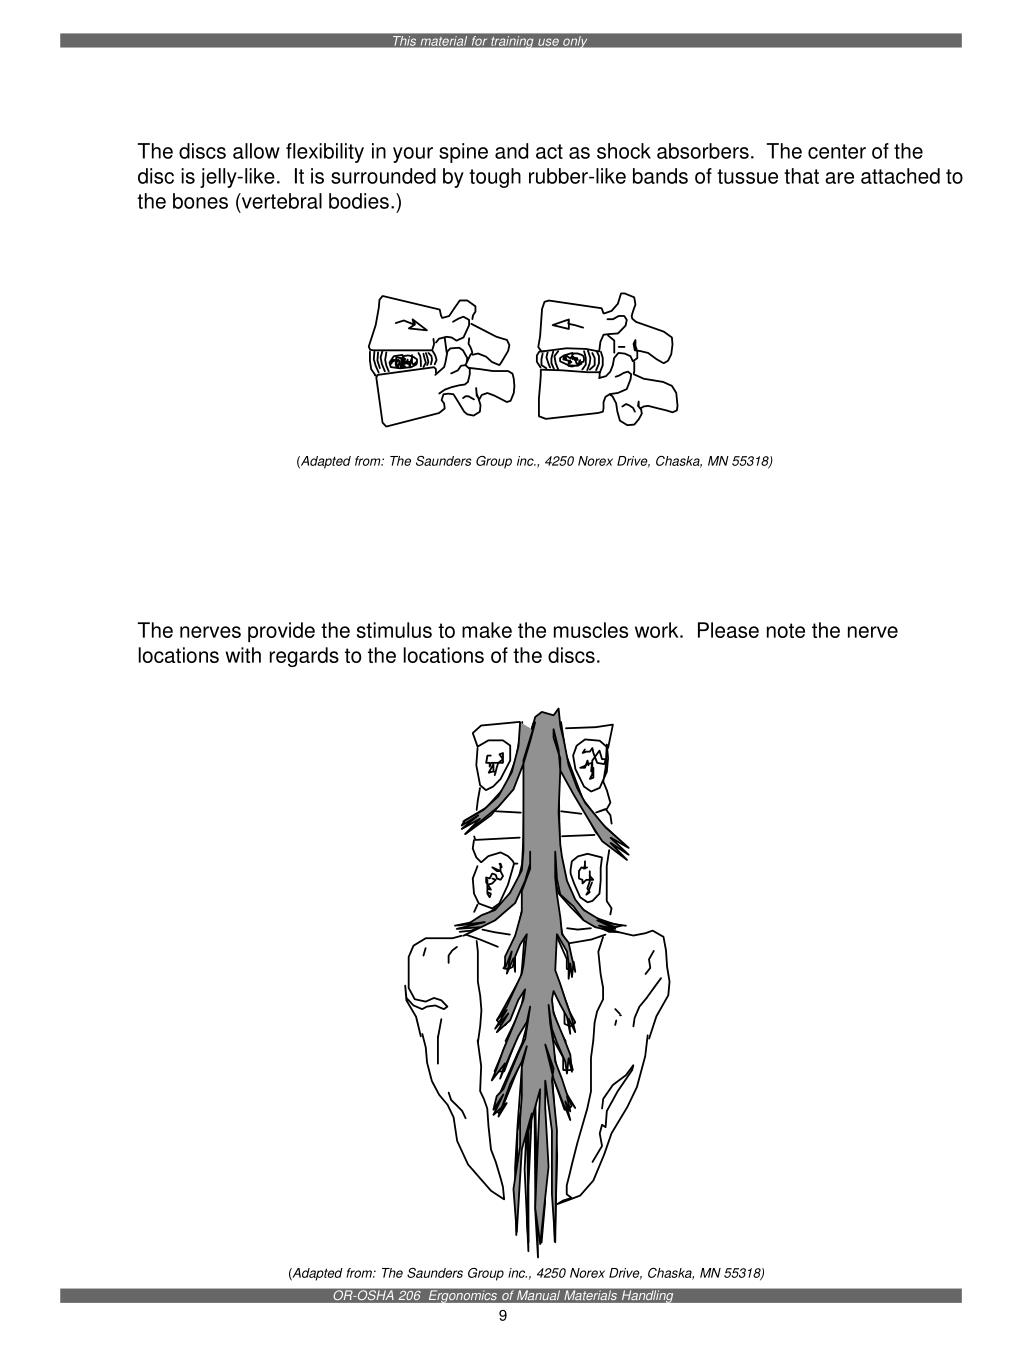 The discs allow flexibility in your spine and act as shock absorbers.  The center of the